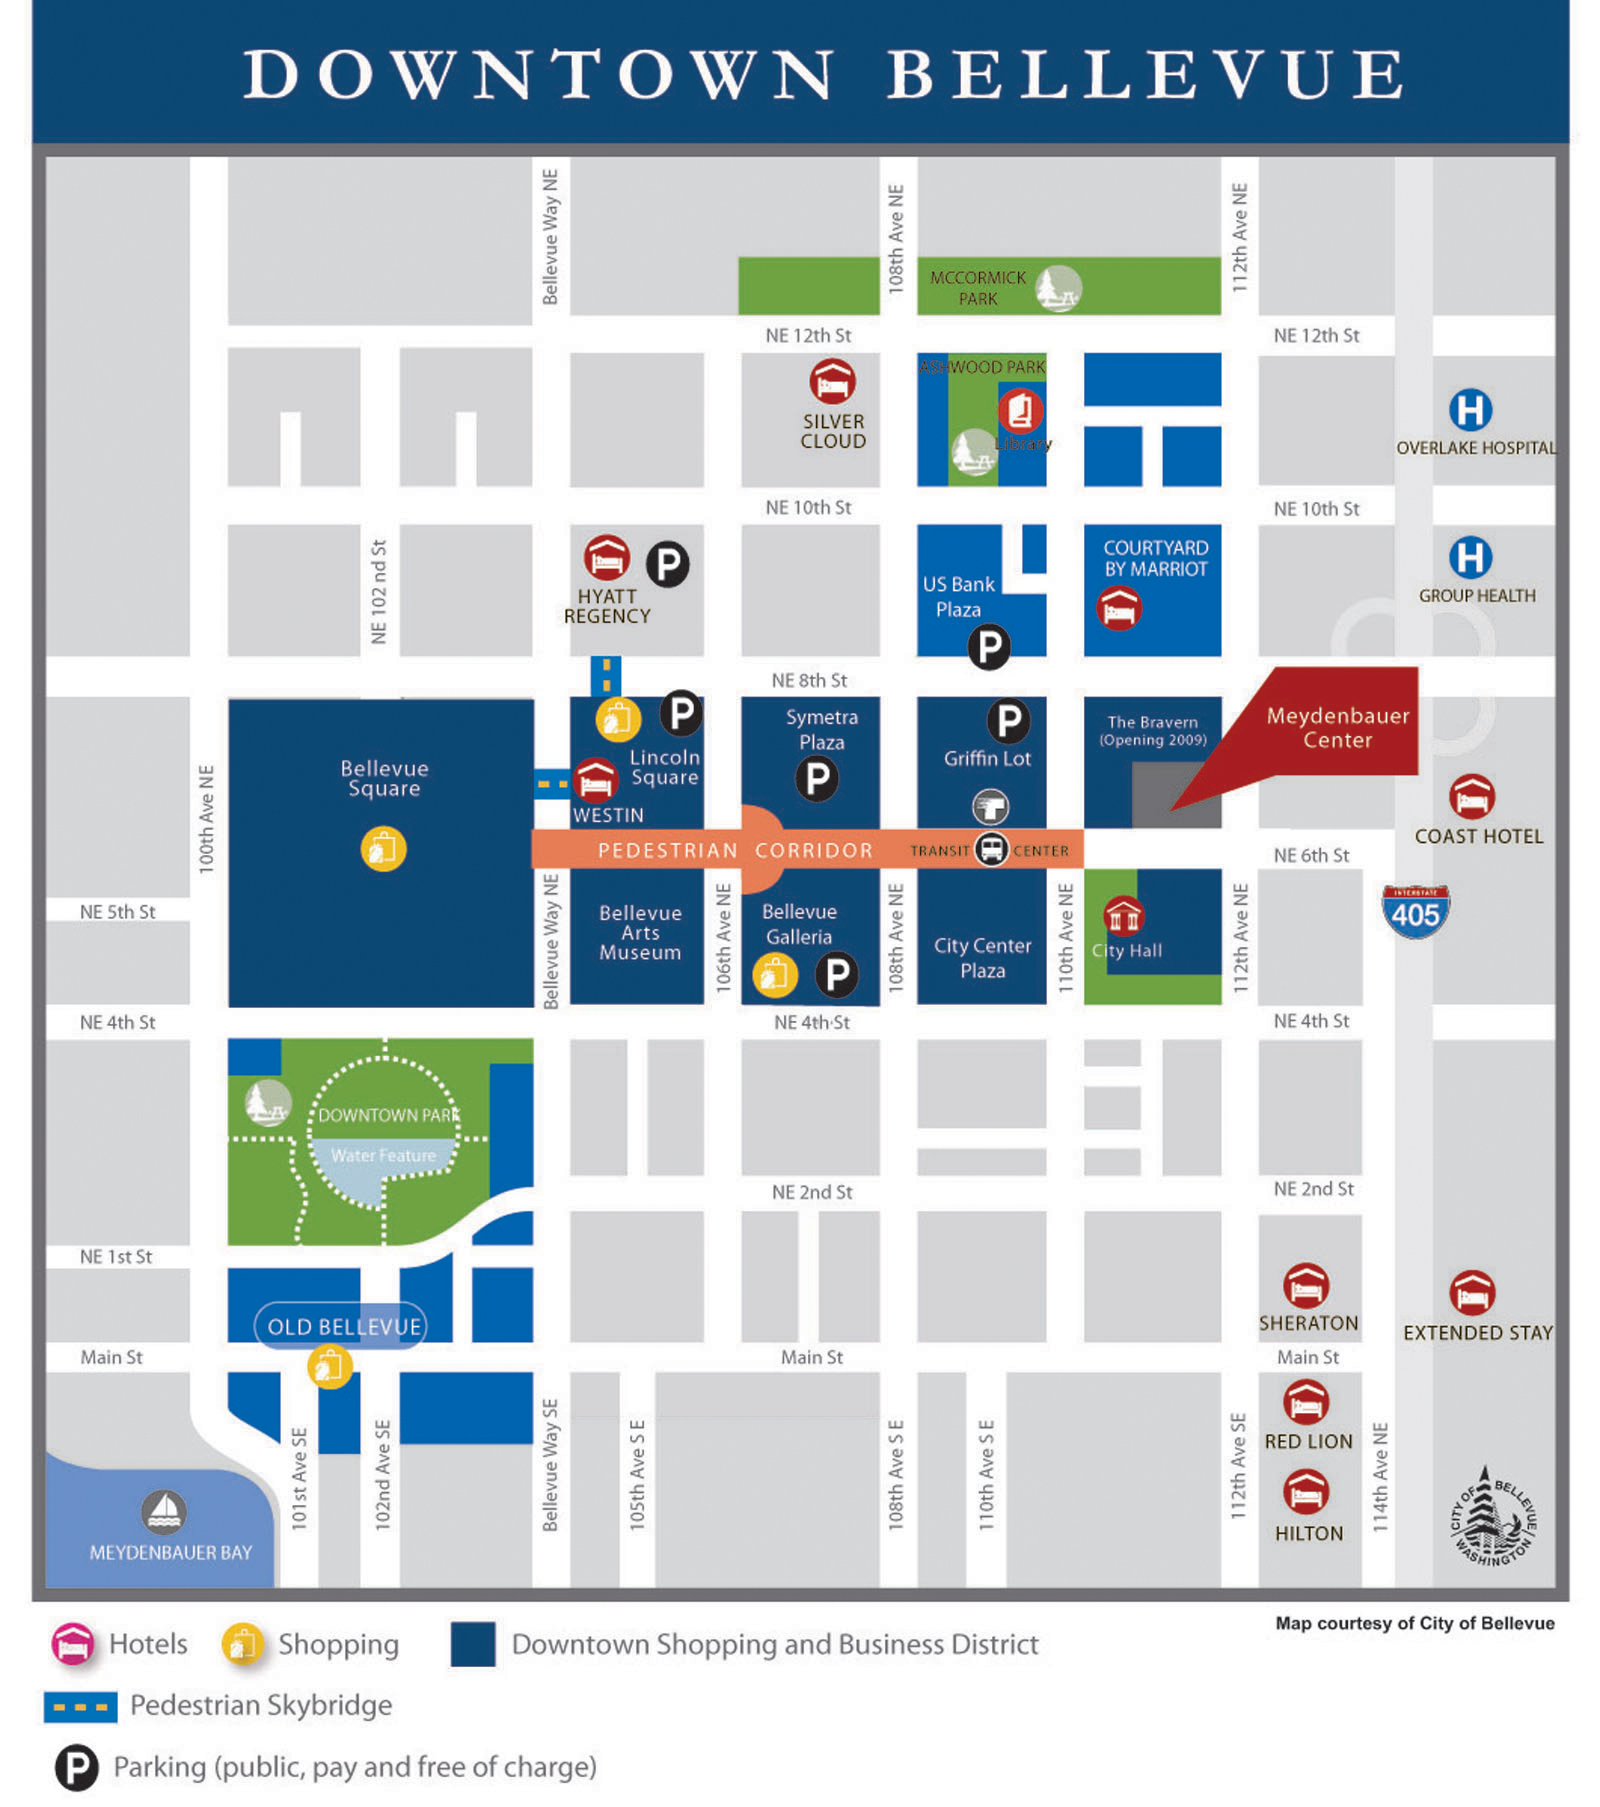 Downtown Bellevue Map Pictures To Pin On Pinterest - PinsDaddy